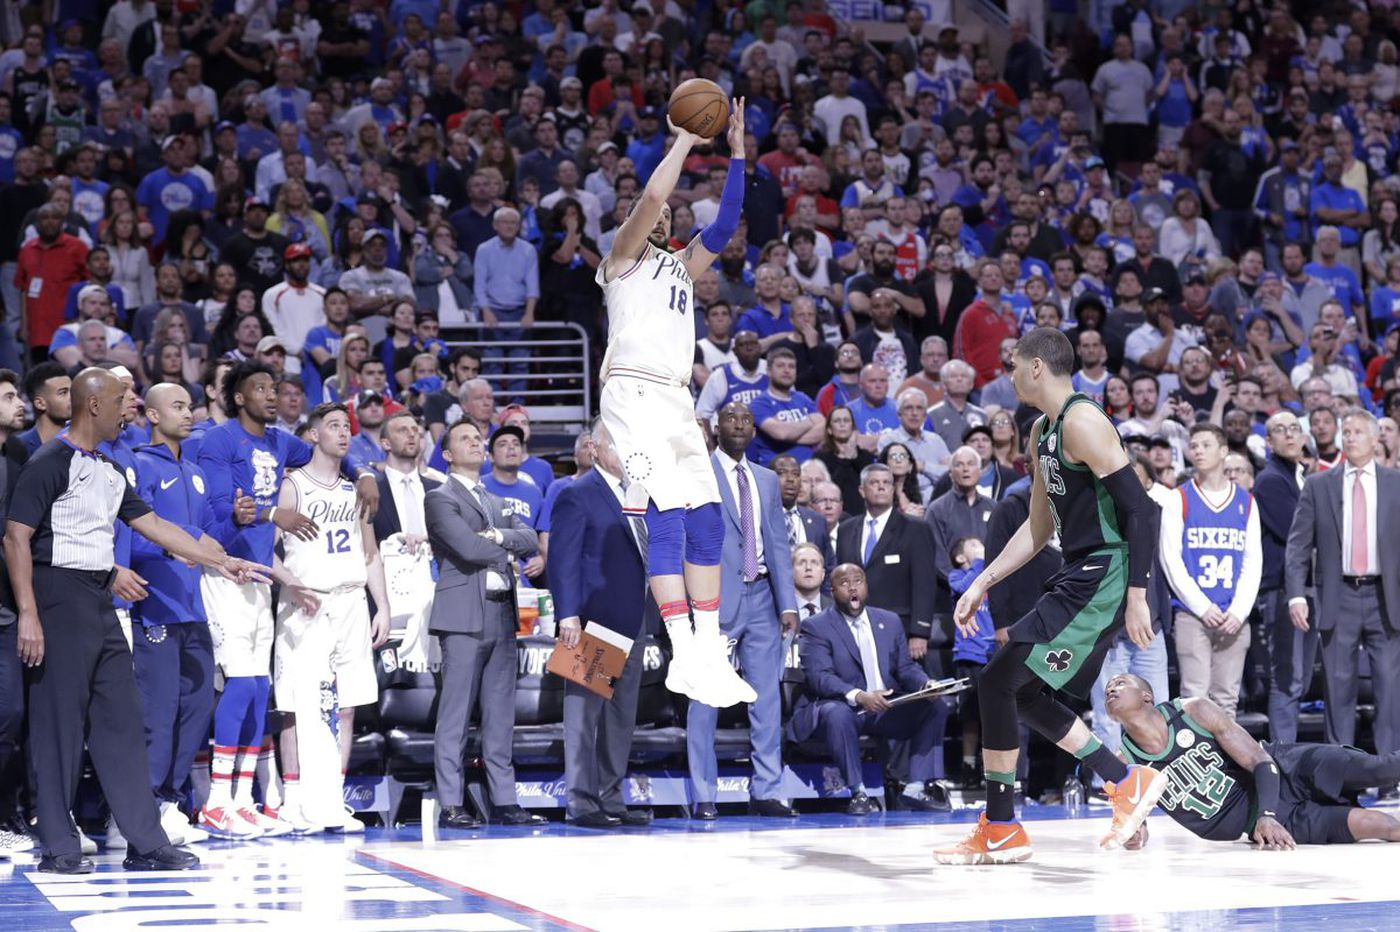 Marco Belinelli's buzzer beater couldn't make up for the Sixers' mistakes